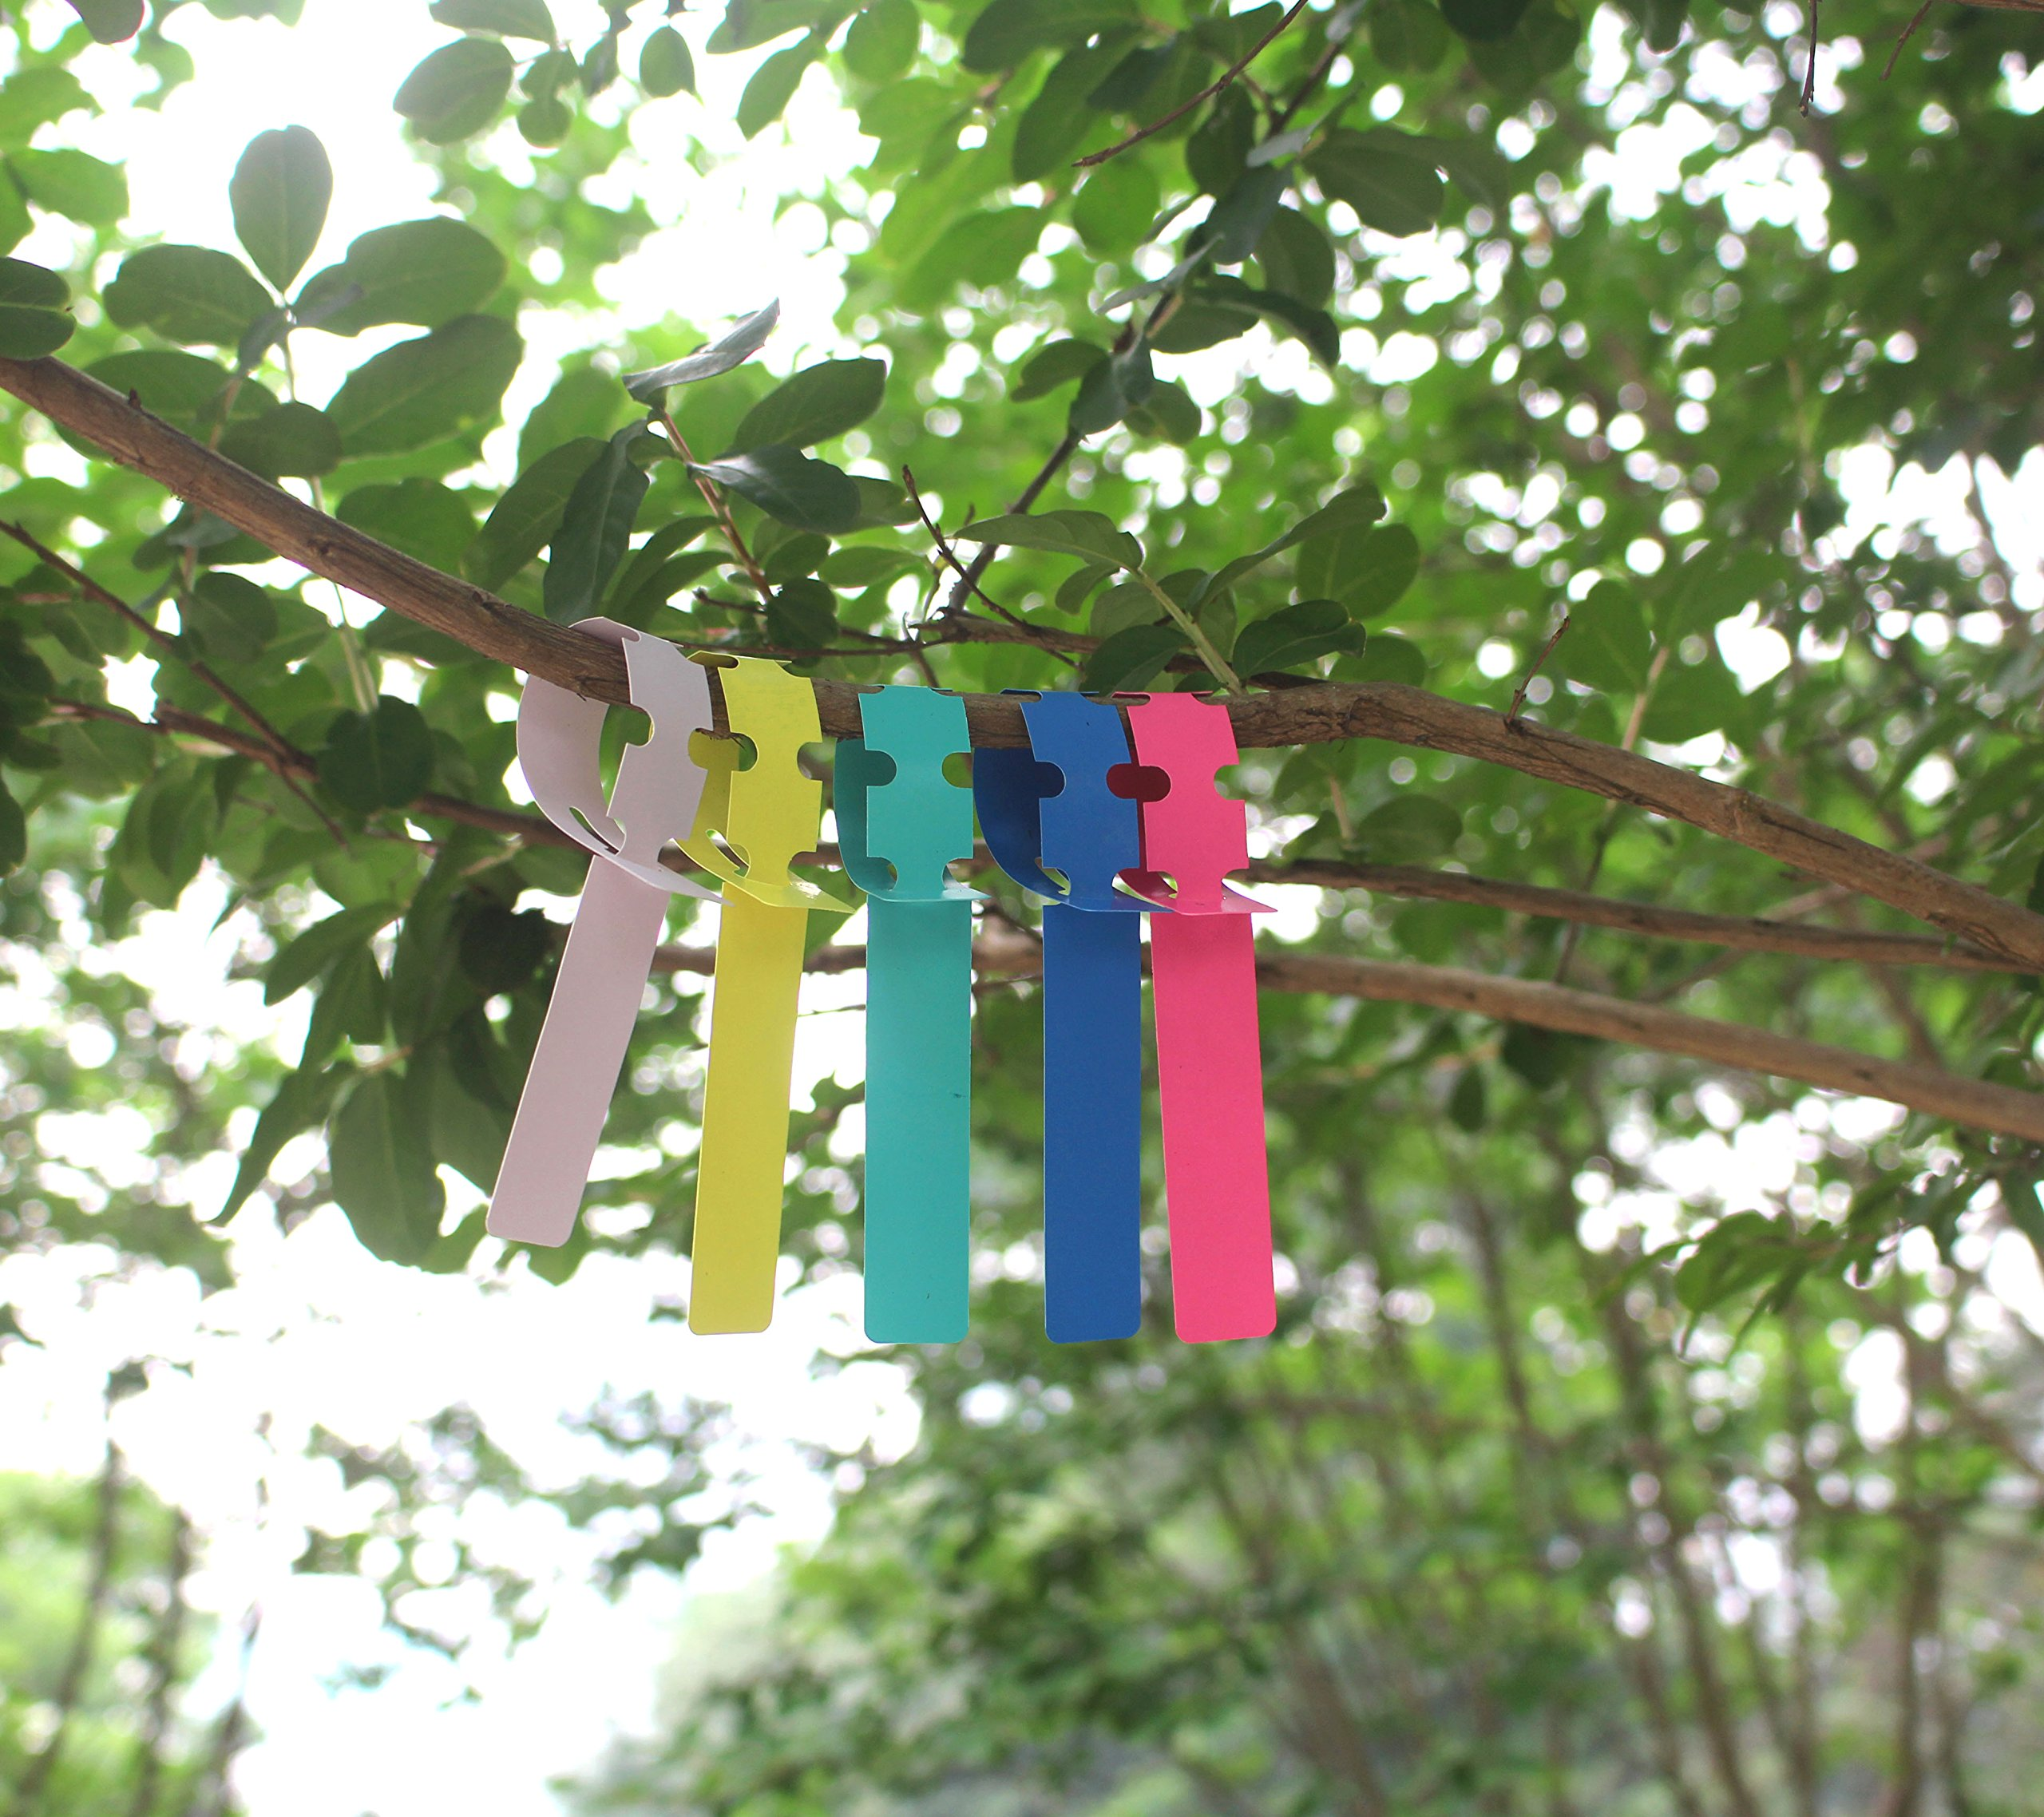 ColorYourLife 250 Pcs 2x20cm Plastic Plant Hanging Tree Tags Nursery Garden Labels Tags Wraps